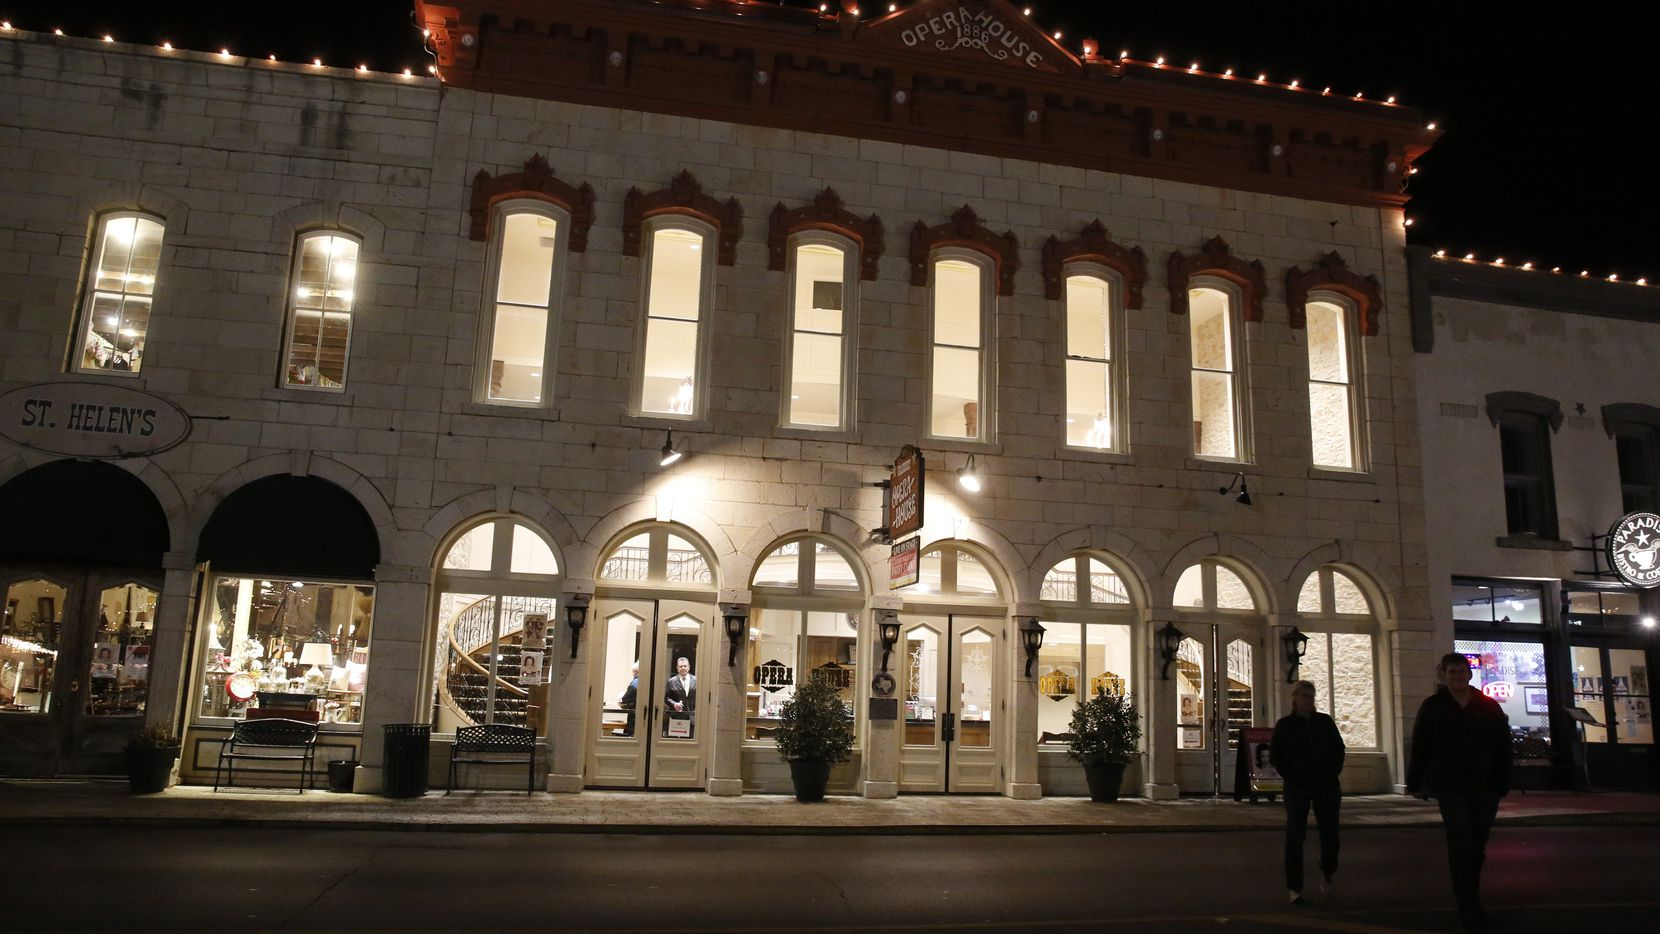 The Granbury Opera House appears in this Jan. 16, 2016 file photo, in Granbury, Texas. On Wednesday, the Granbury Theatre Company, which performs in the venue, suspended operations after cast and crew members of the company's recent production of 'Legally Blonde' tested positive for COVID-19.